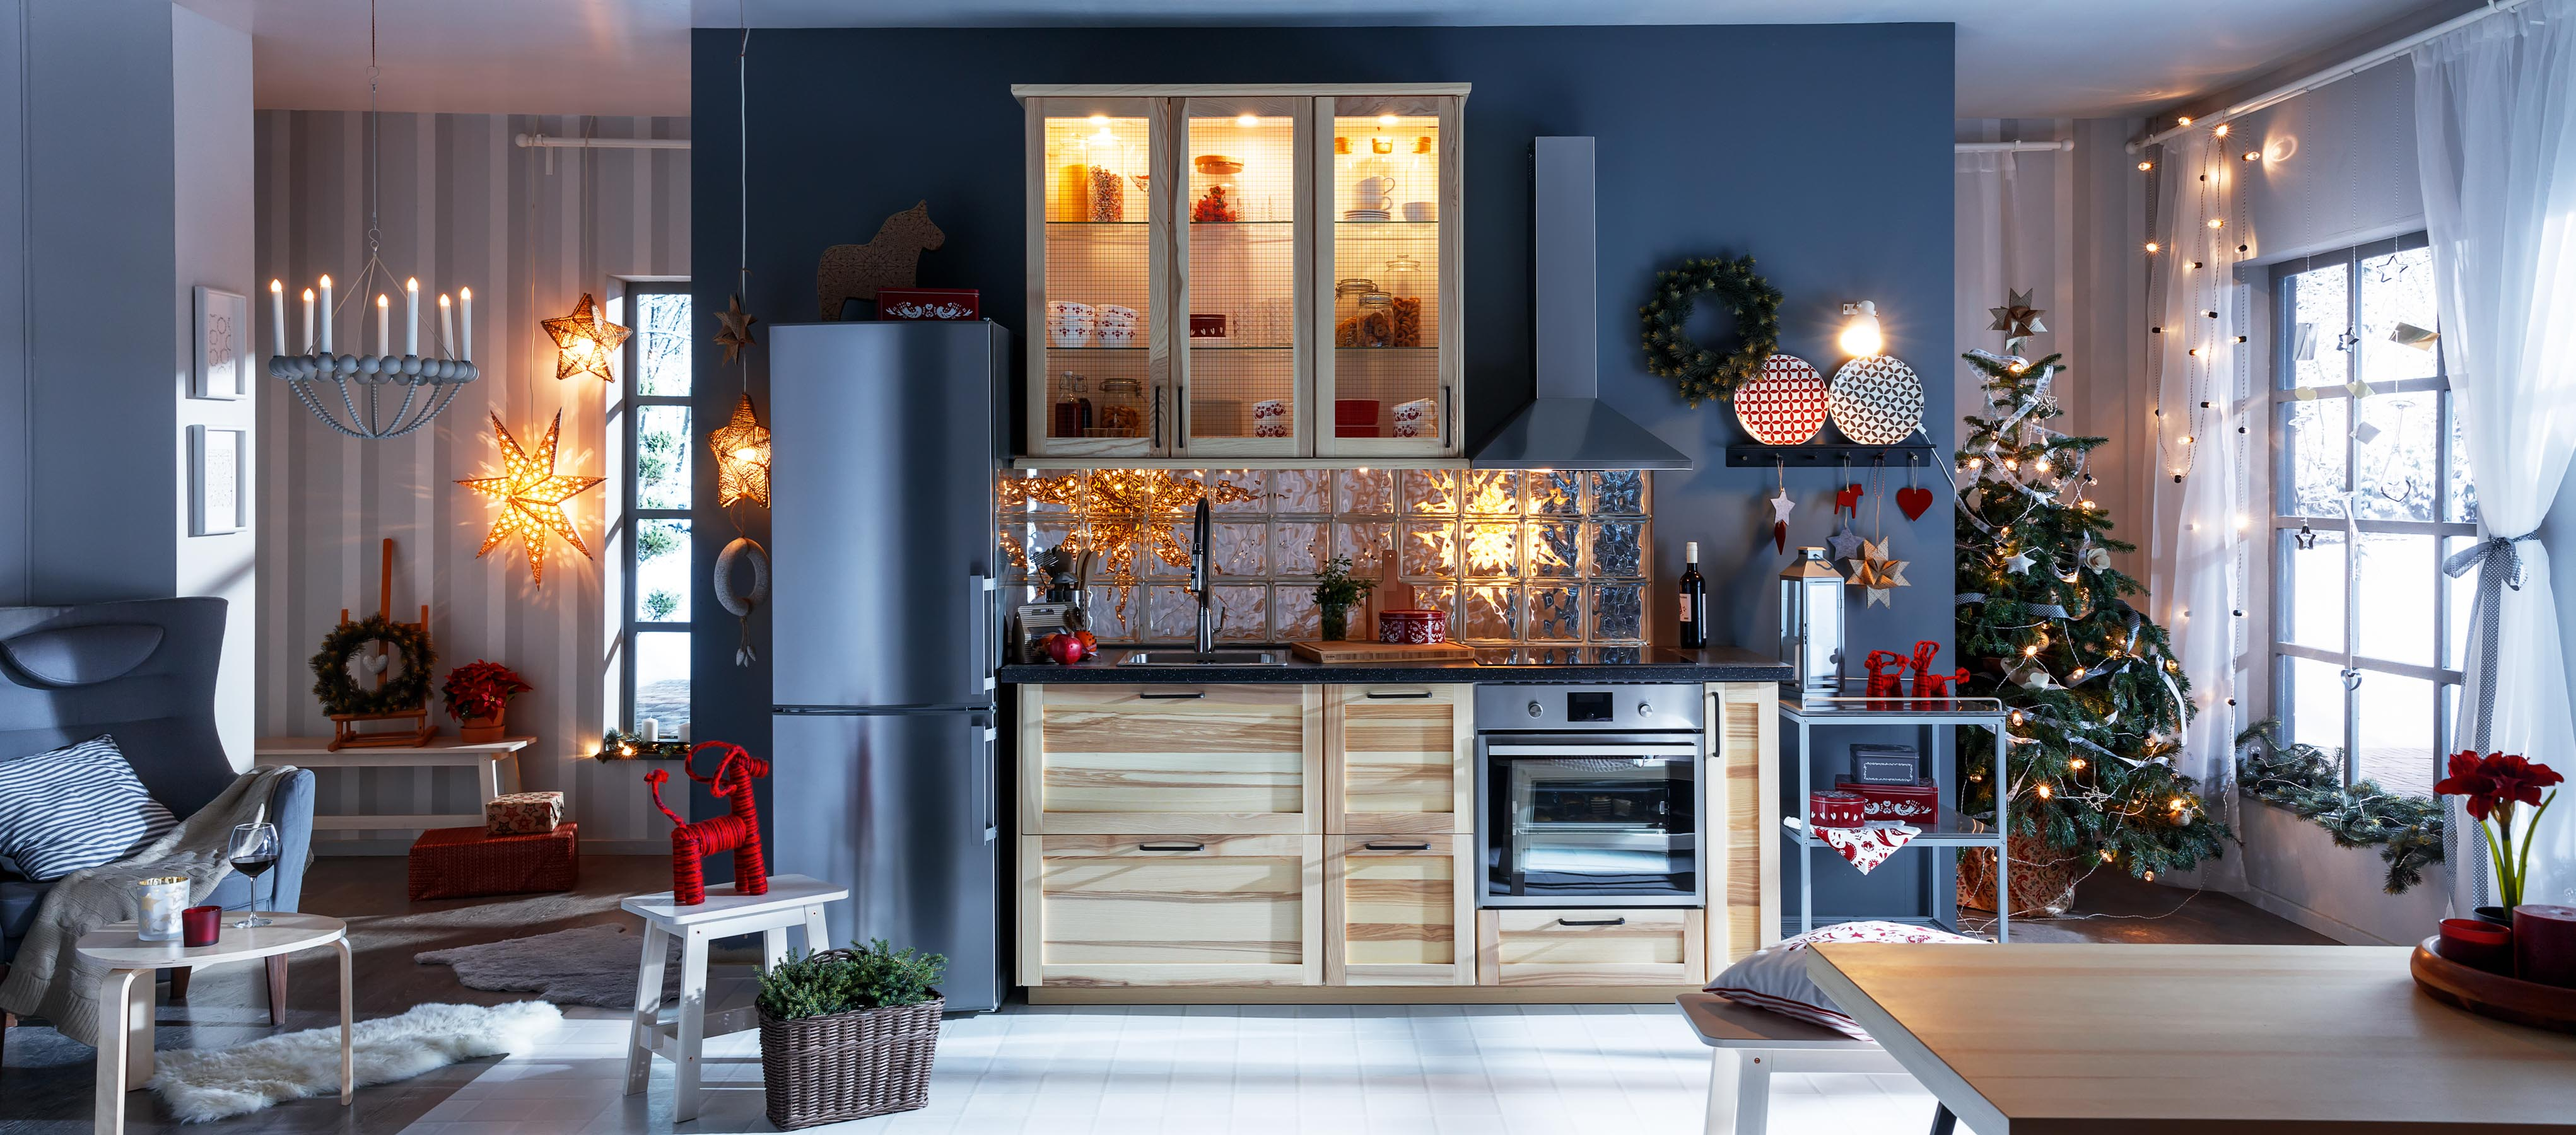 Ikea Kitchen Christmas 5